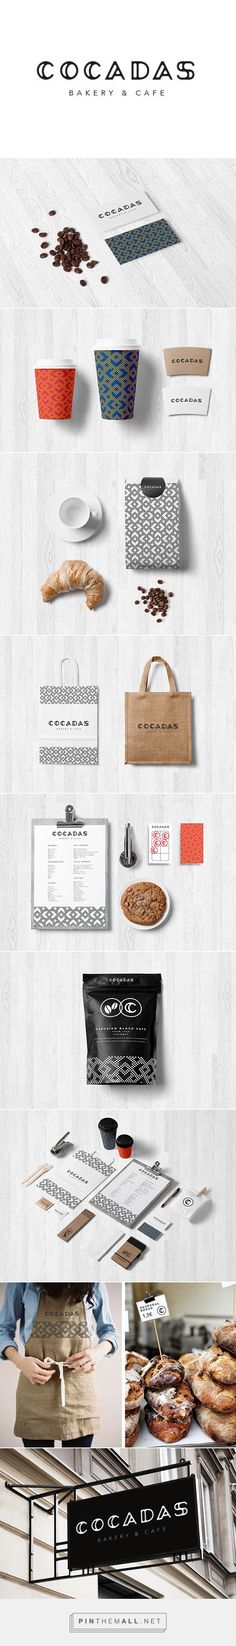 C O C A D A S - Bakery & Cafe on Behance by Laia Gubern curated by Packaging Diva PD. Who wants to go : ) 2015 top team pin. Food Branding, Cafe Branding, Restaurant Branding, Corporate Design, Brand Identity Design, Graphic Design Branding, Typography Design, Bakery Logo, Bakery Cafe